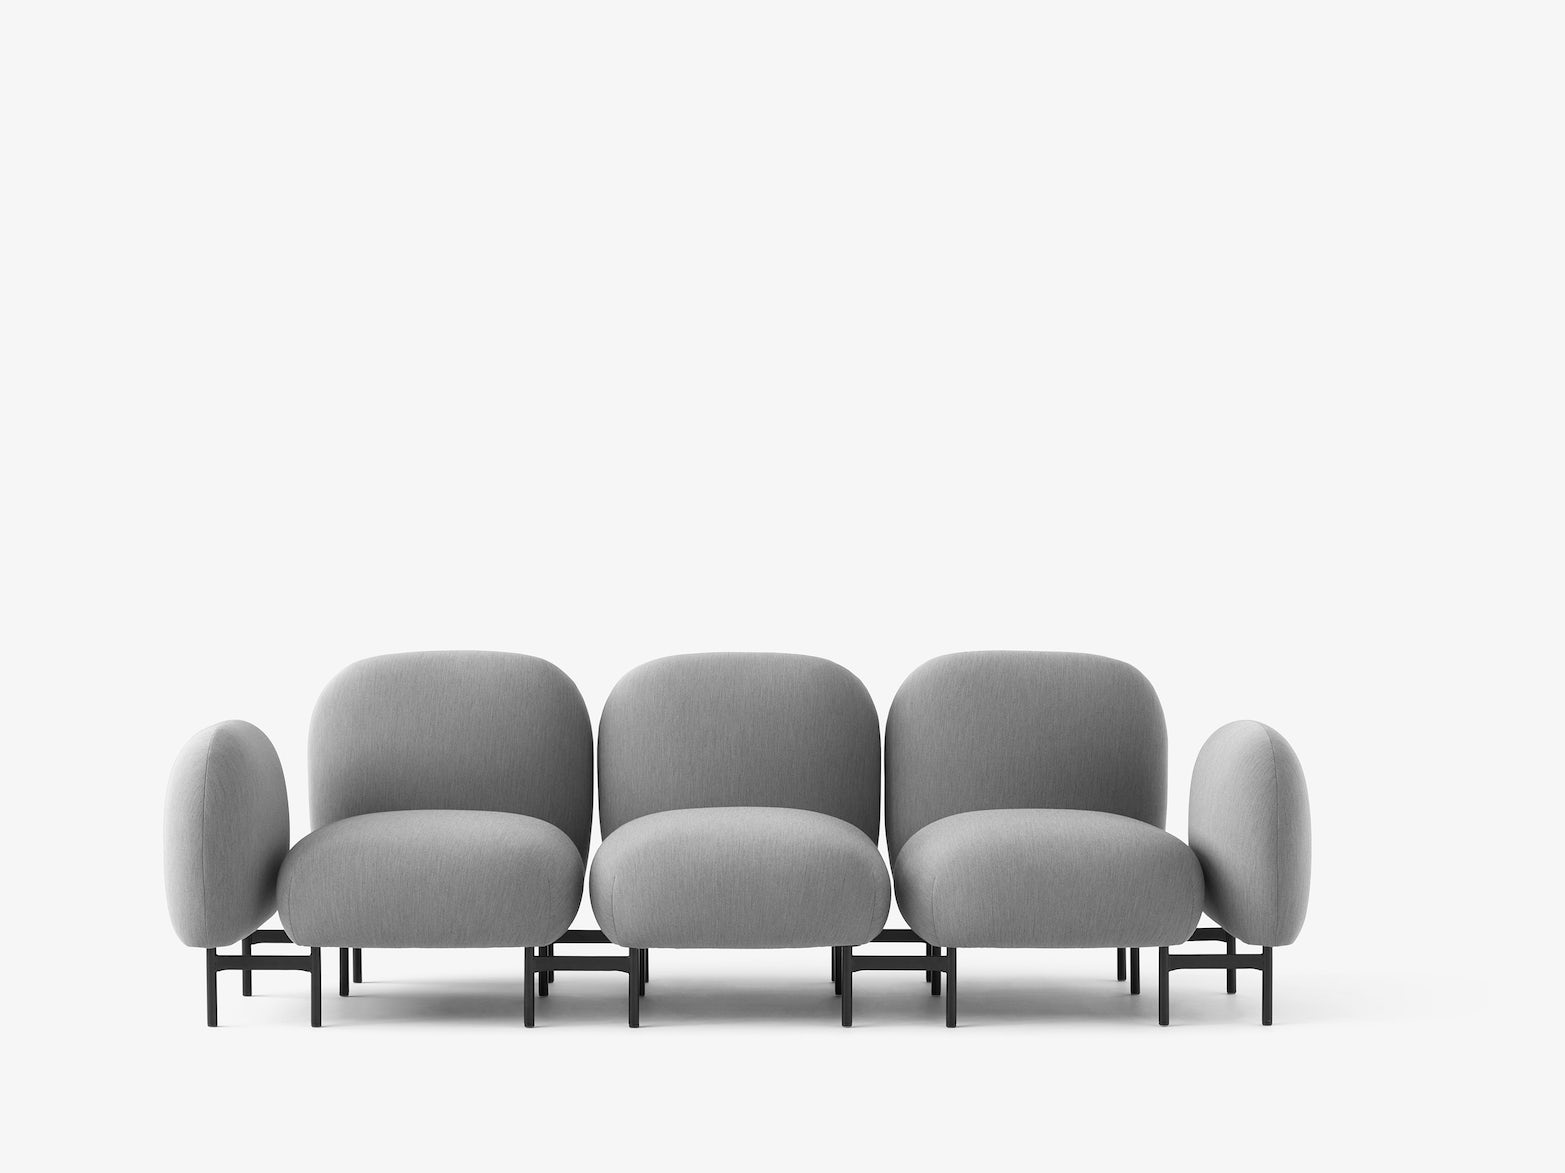 Isole seating system nn1 nendo luca nichetto andtradition andtradition 3